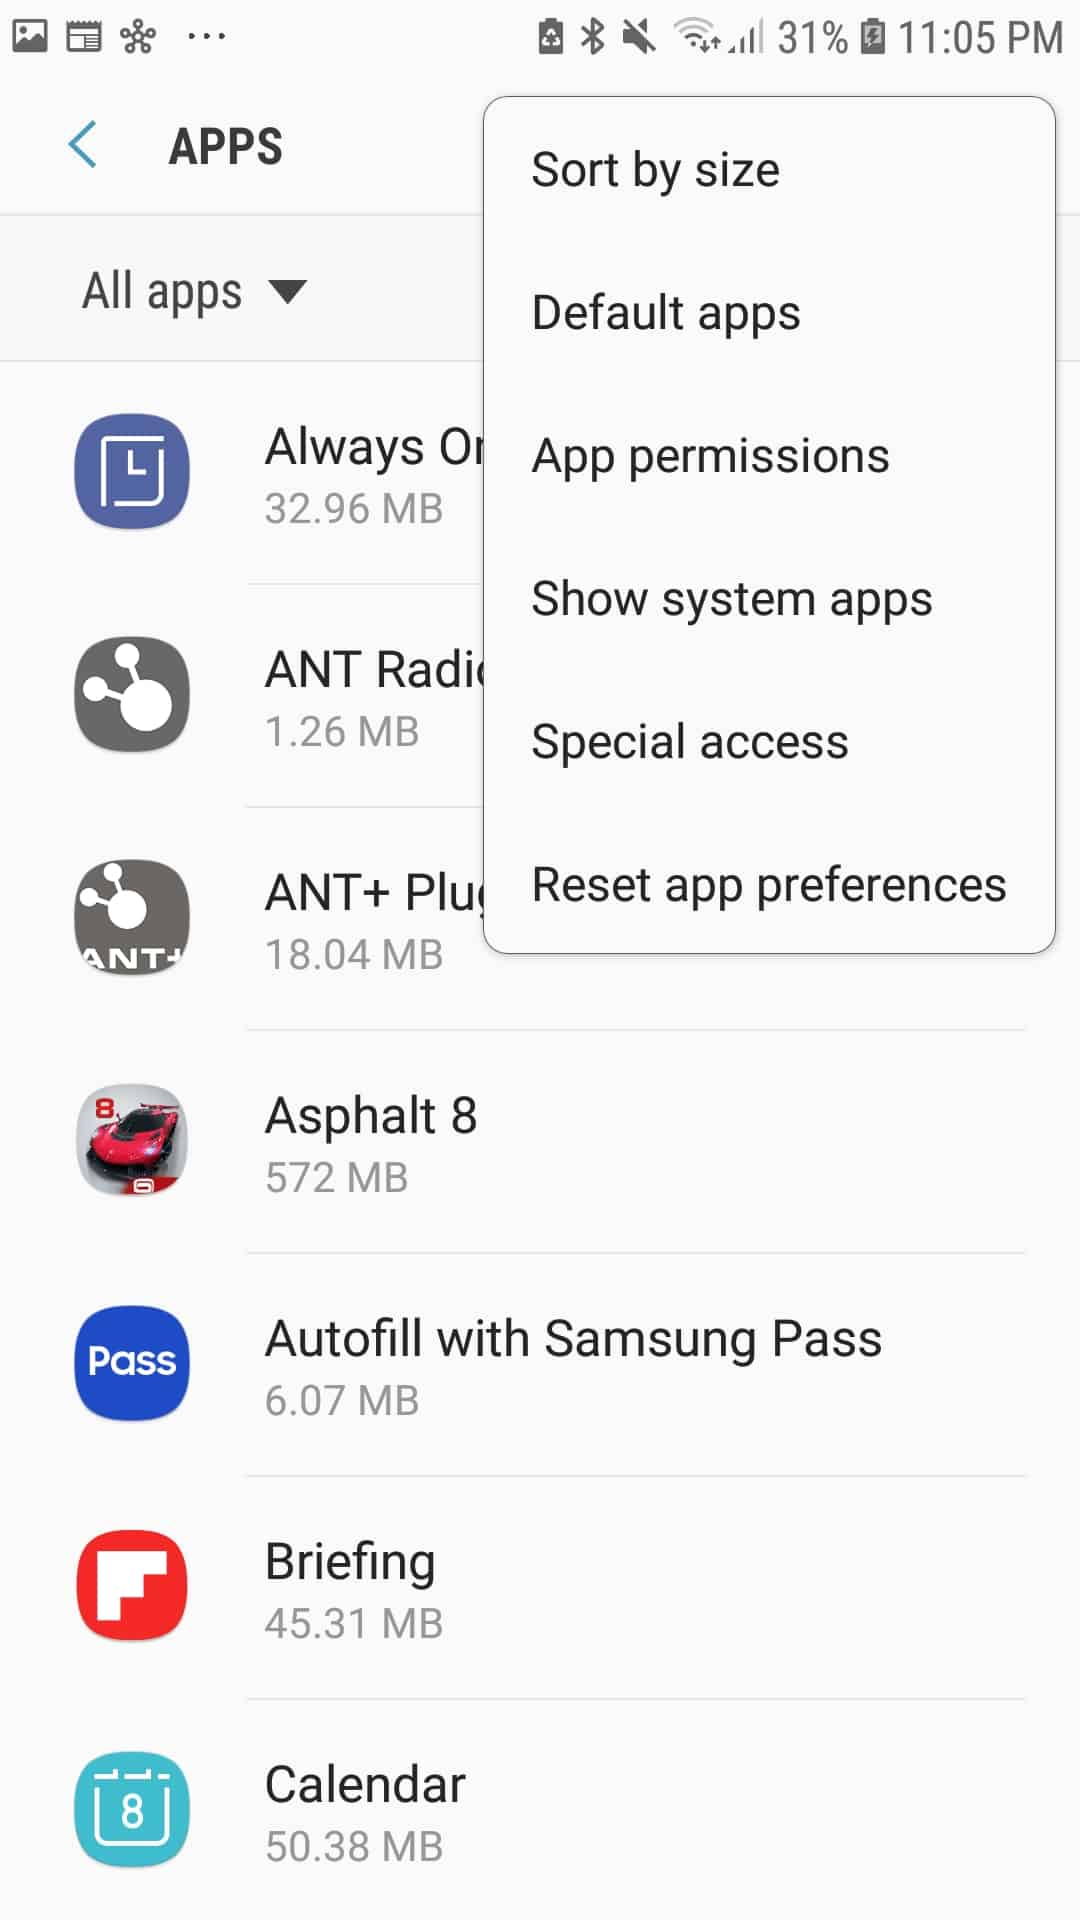 Show System Apps